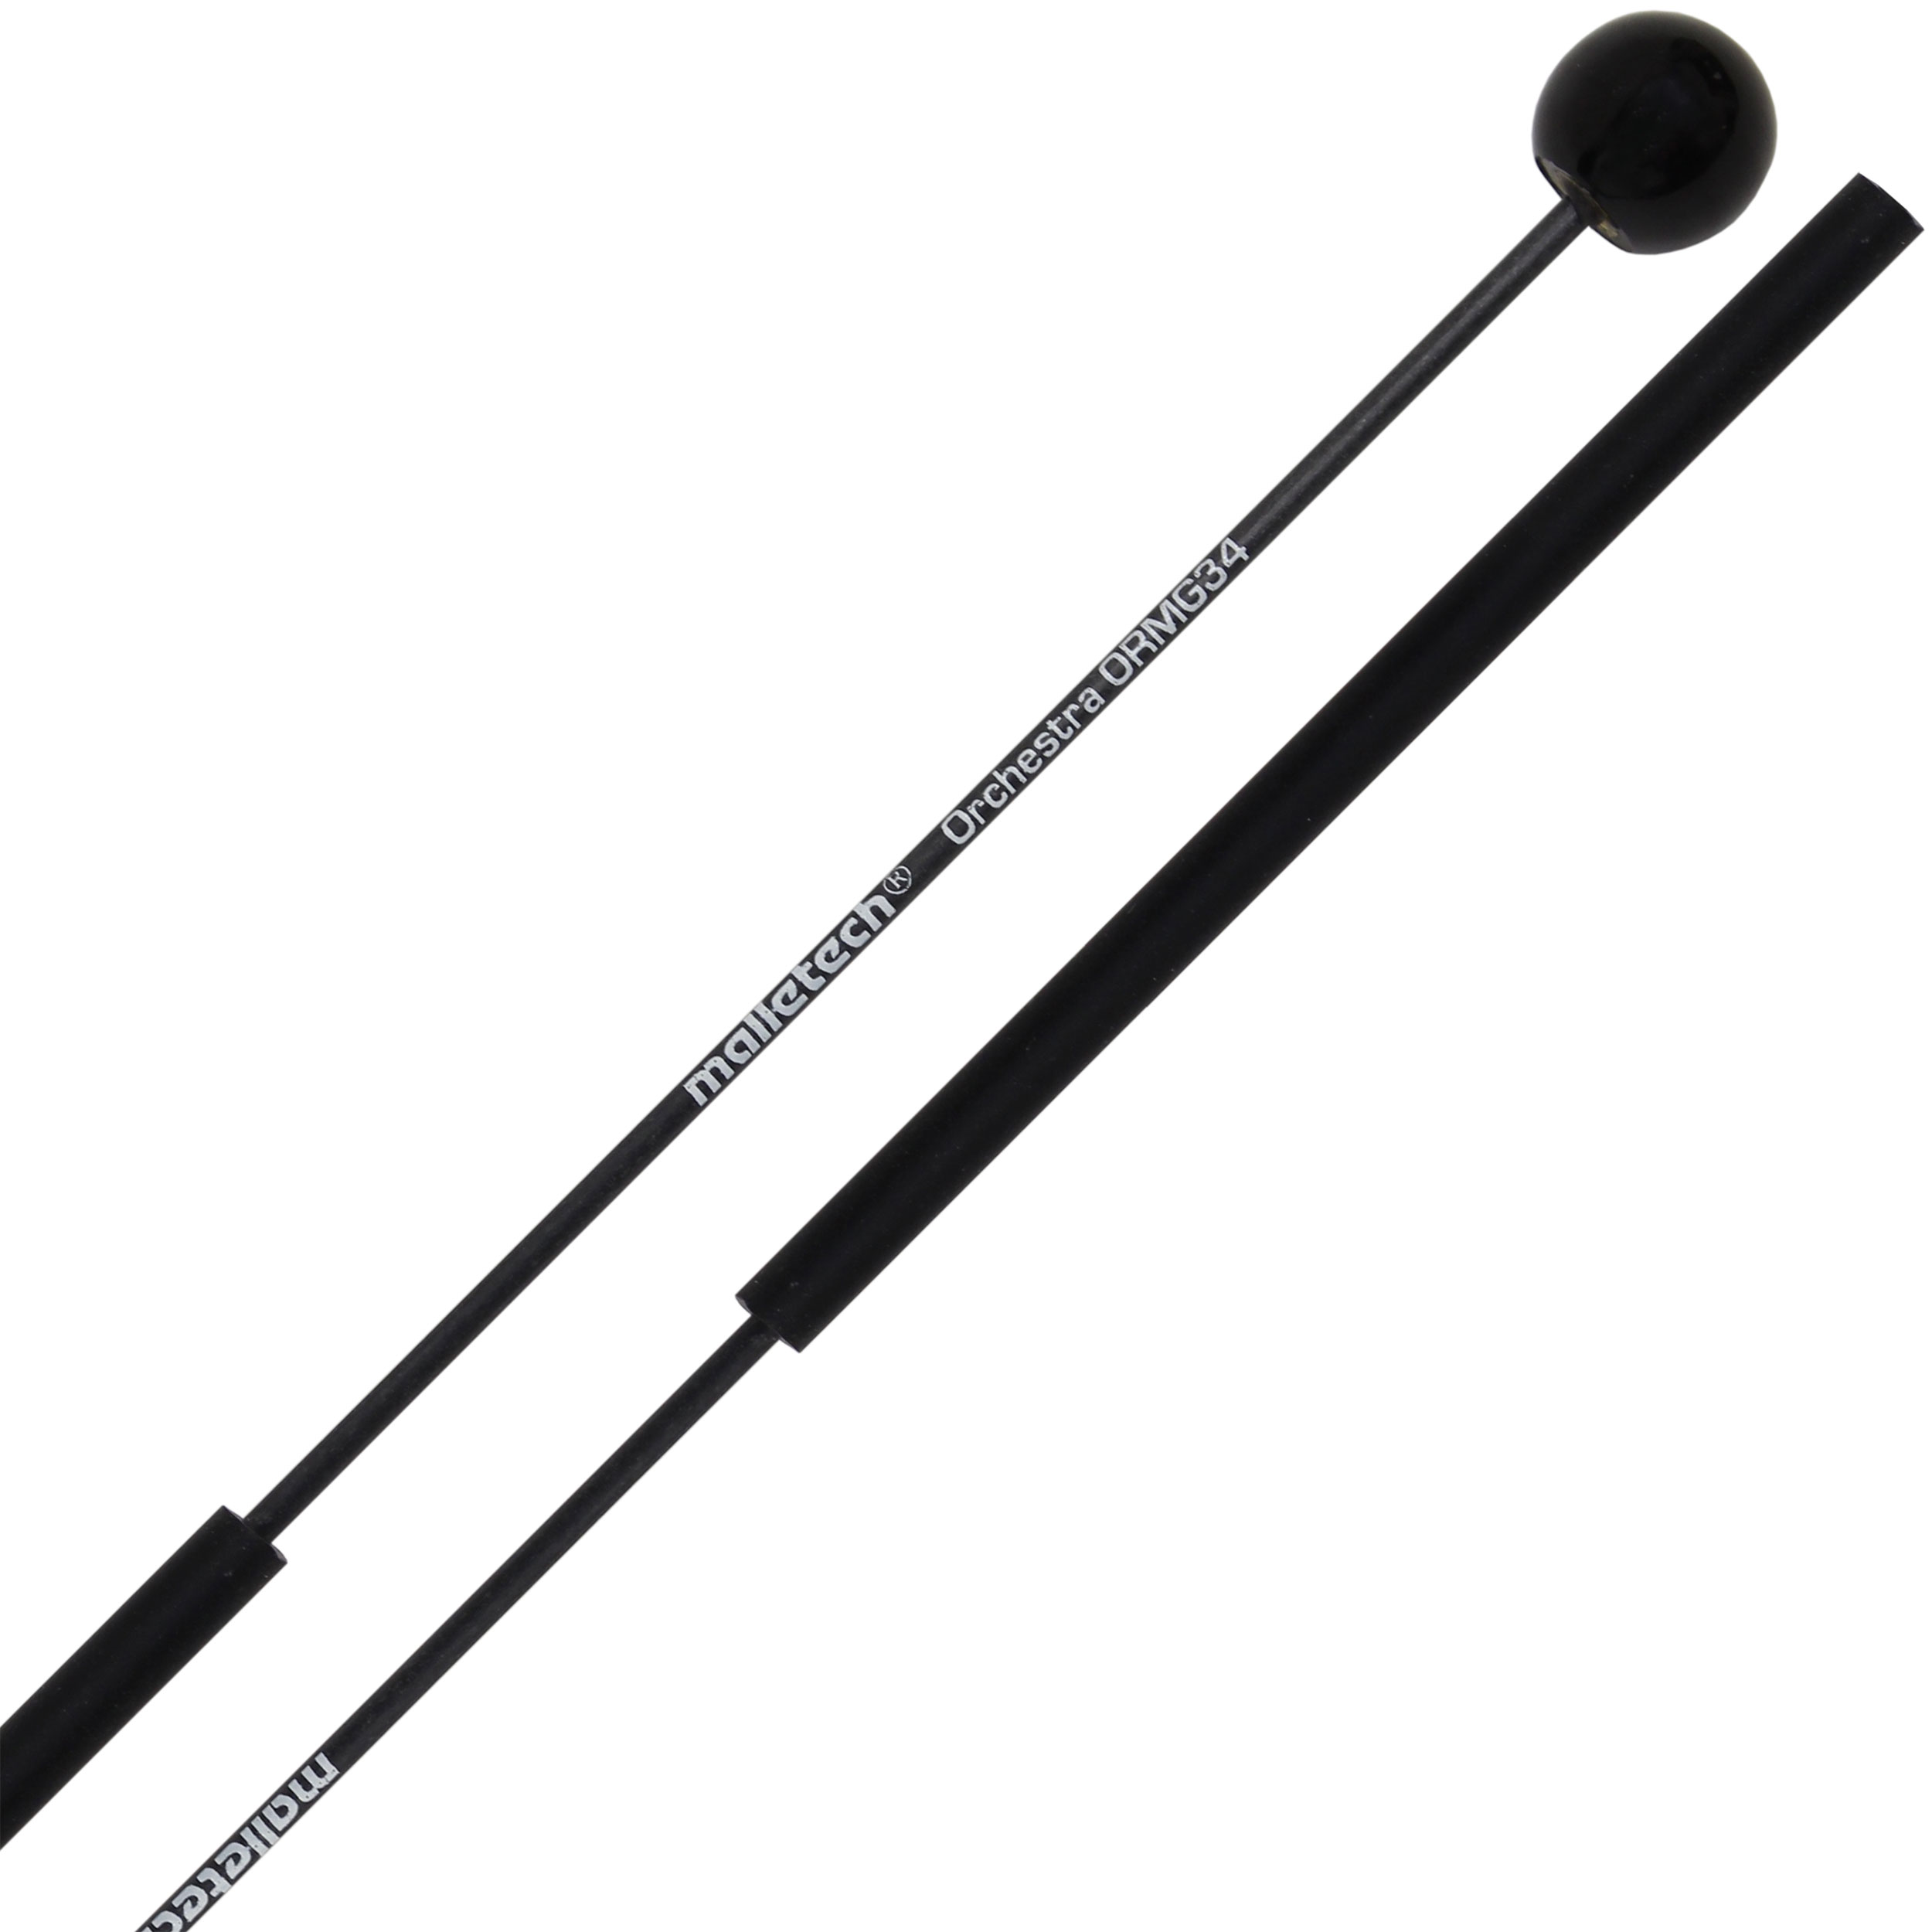 "Malletech Orchestral Series 1/2"" Black Mini-Glock Mallets with Extra Thin Fiberglass Shafts"